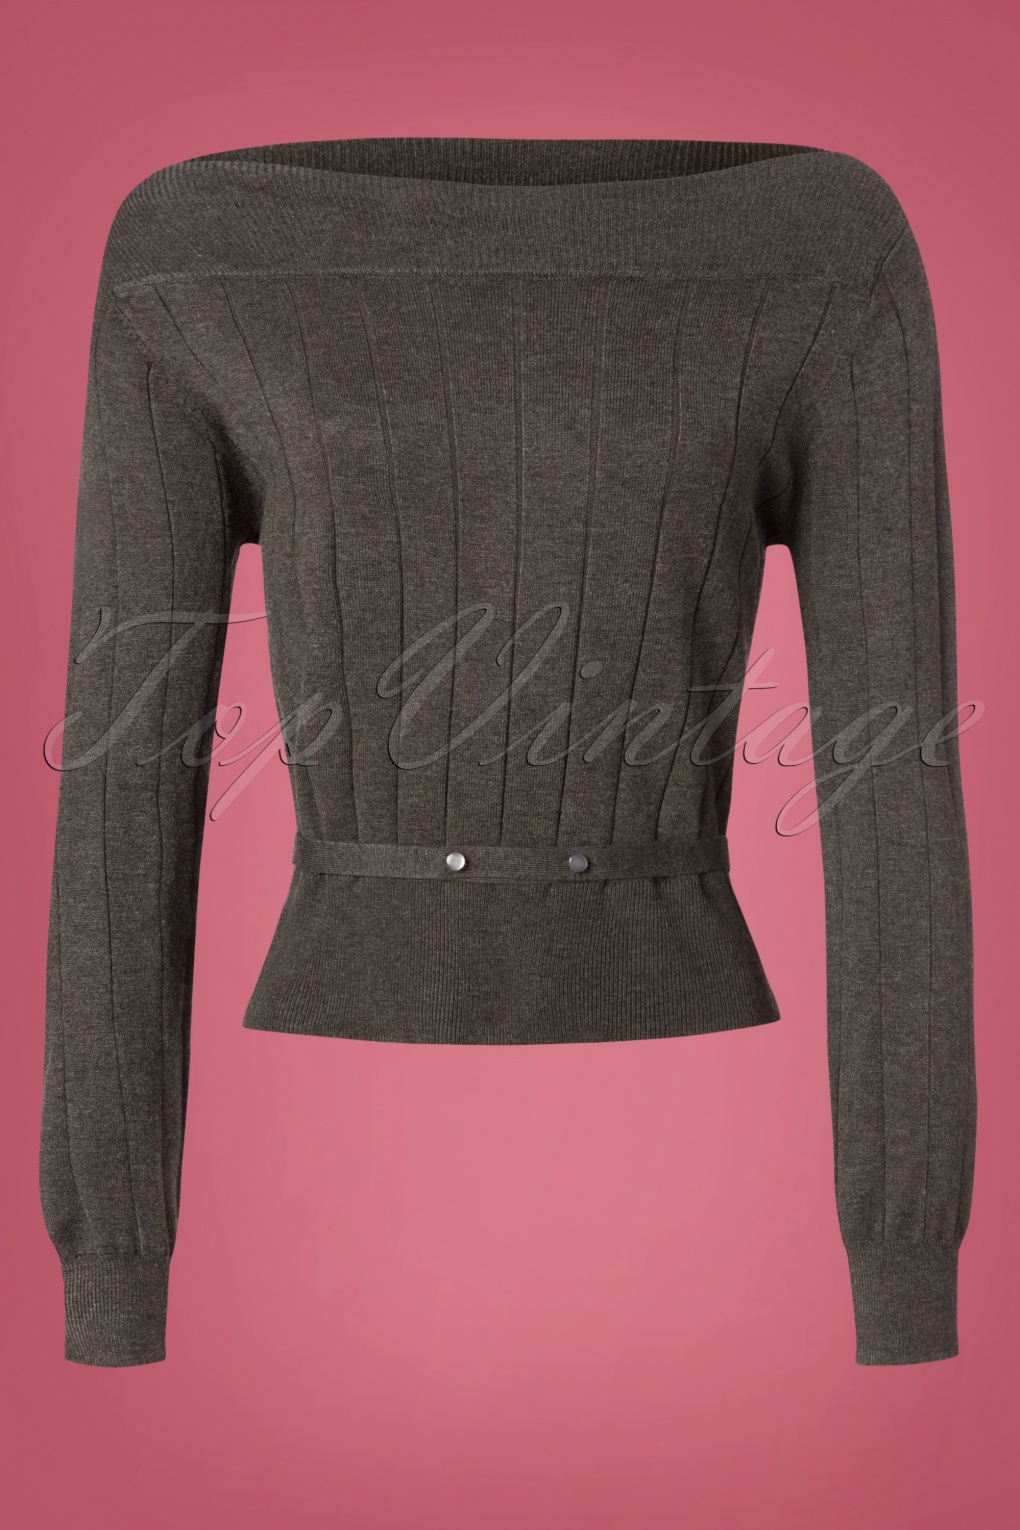 1950s Sweaters, 50s Cardigans, Twin Sweater Sets 60s Violetta Knitted Top in Grey £32.47 AT vintagedancer.com